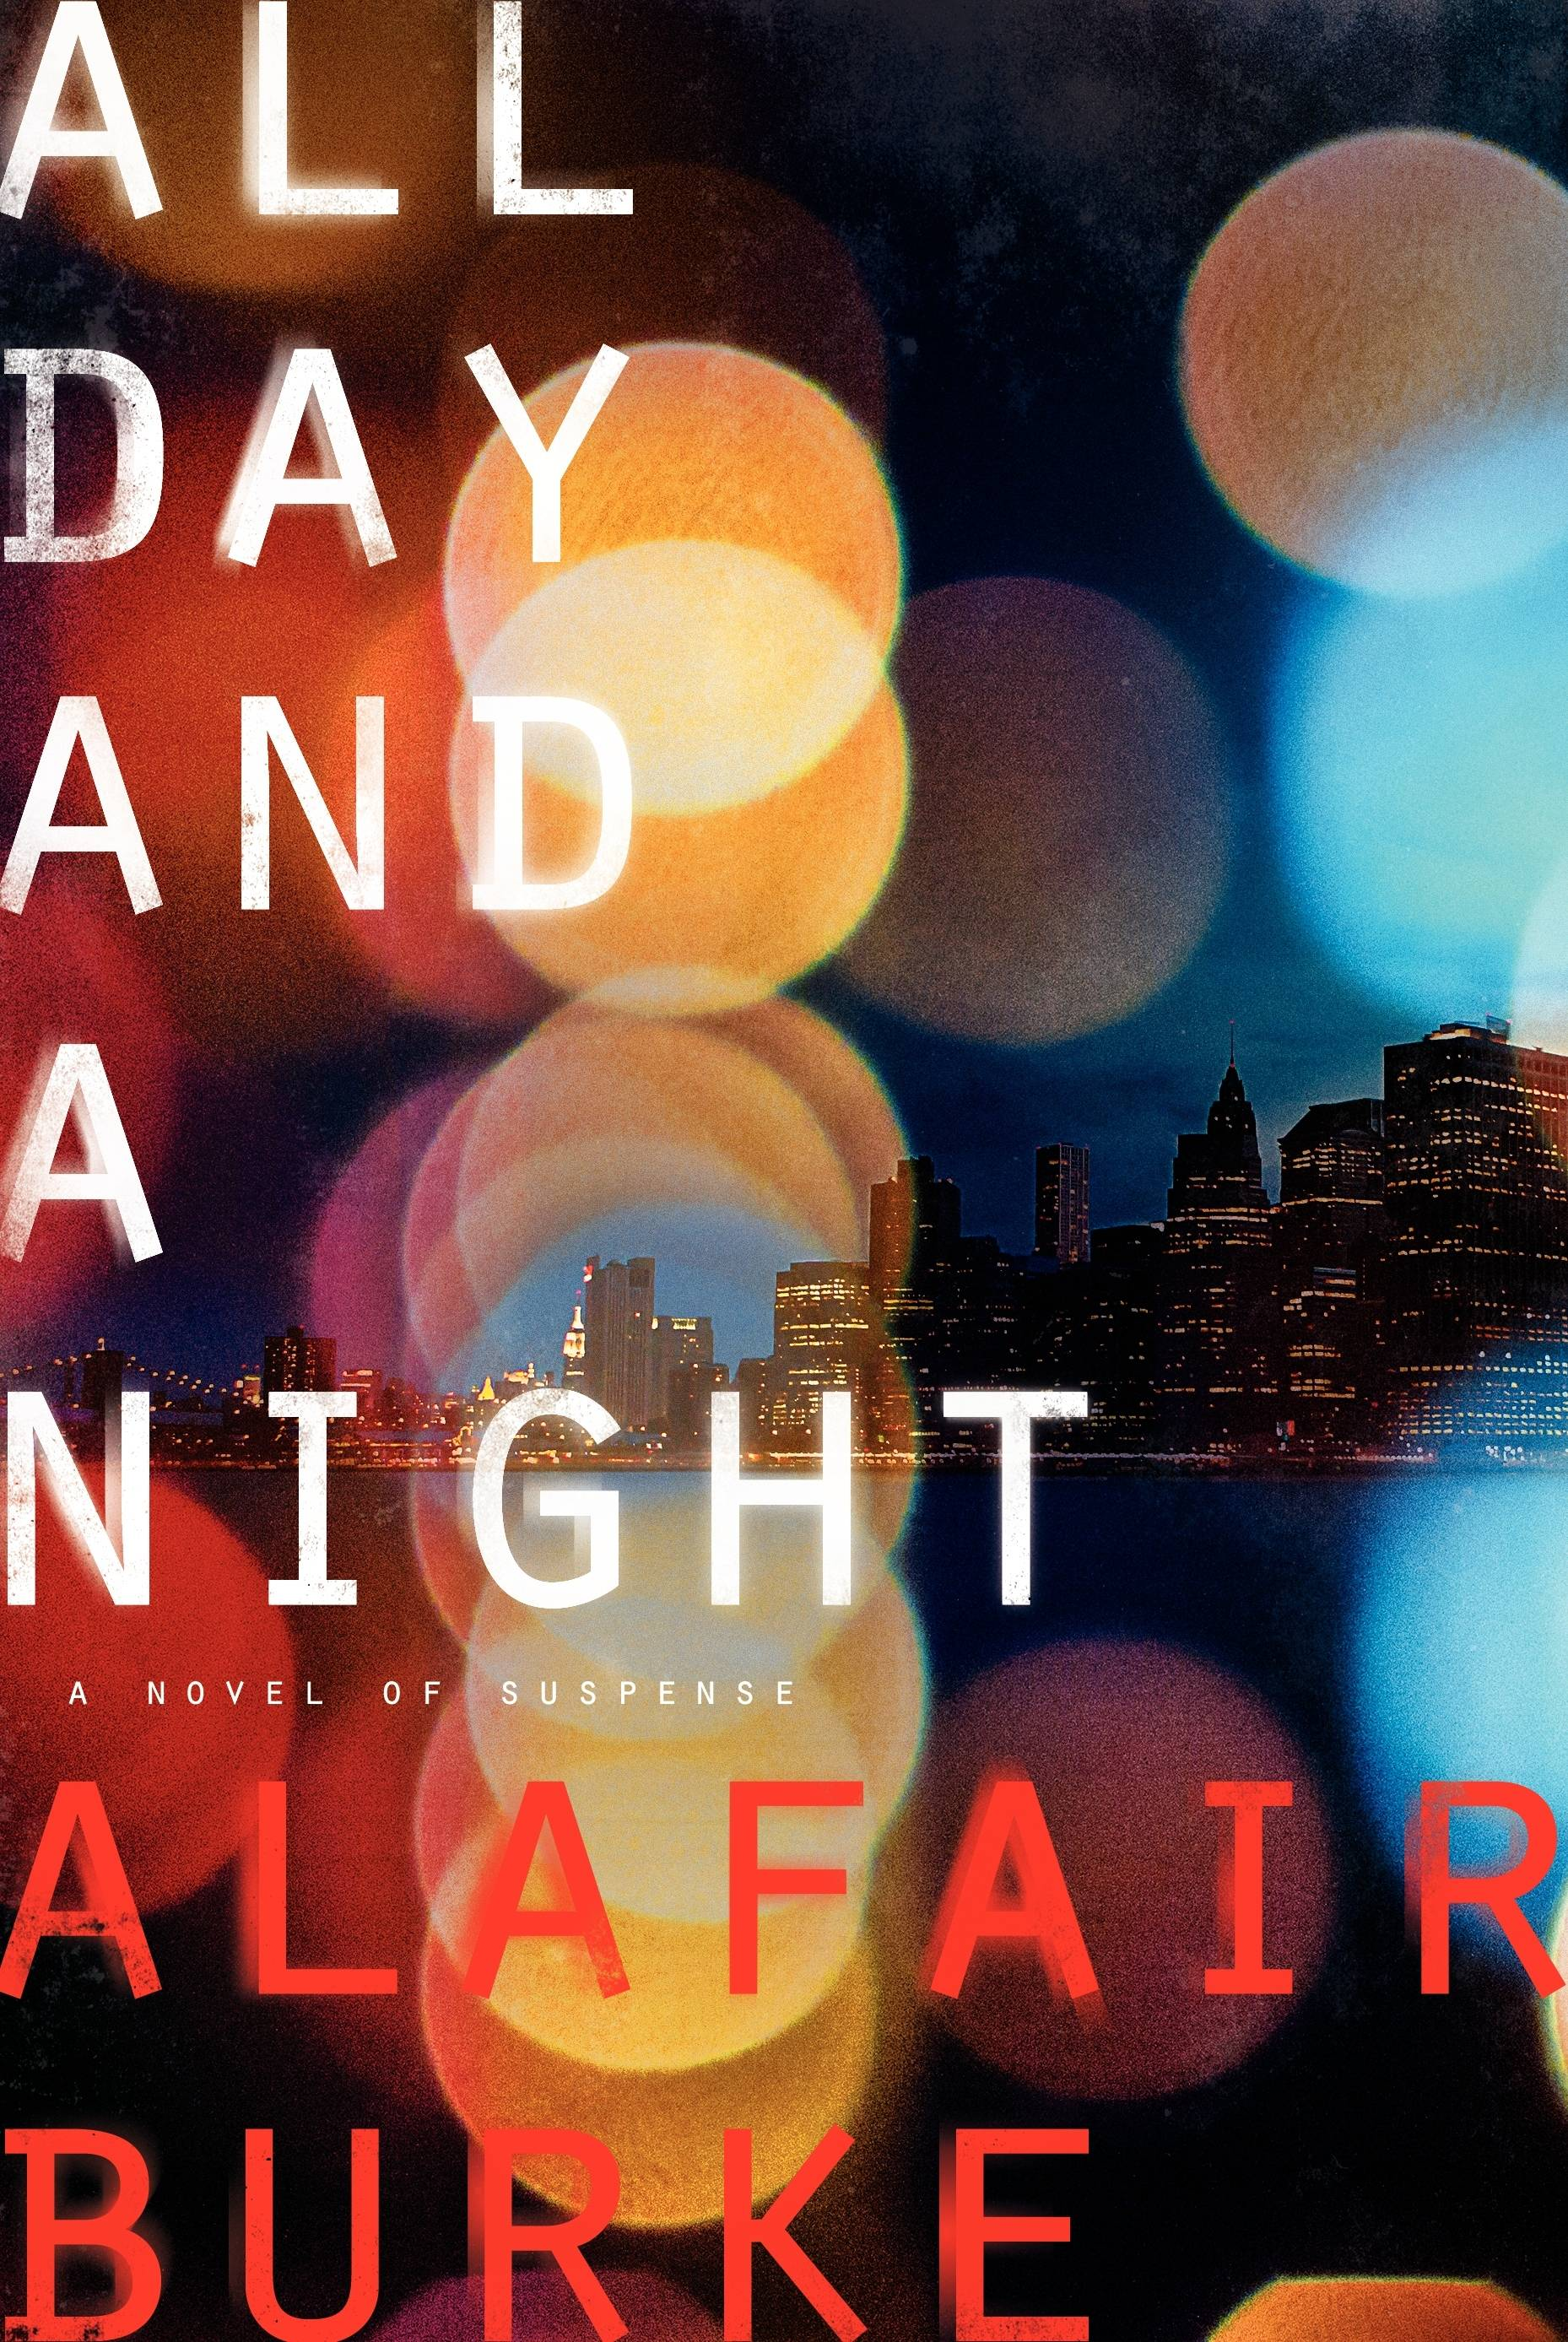 """All Day and a Night"" by Alafair Burke may just be the best yet in the Ellie Hatcher series."